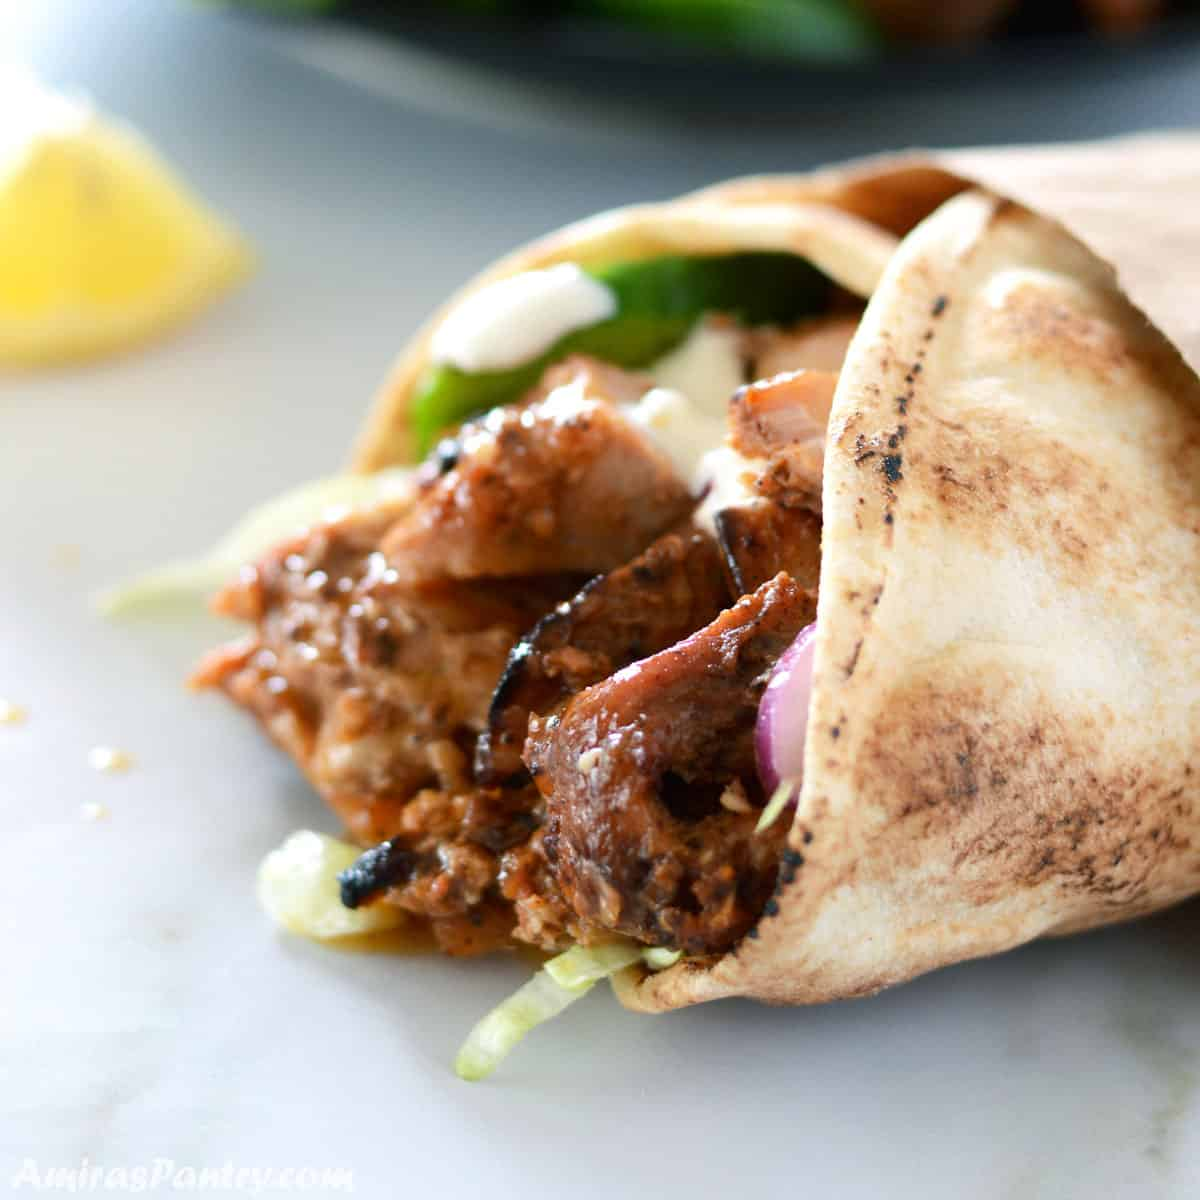 A close up picture of a chicken shawarma wrap placed on a awhite countertop with a lemon wedge on the side.